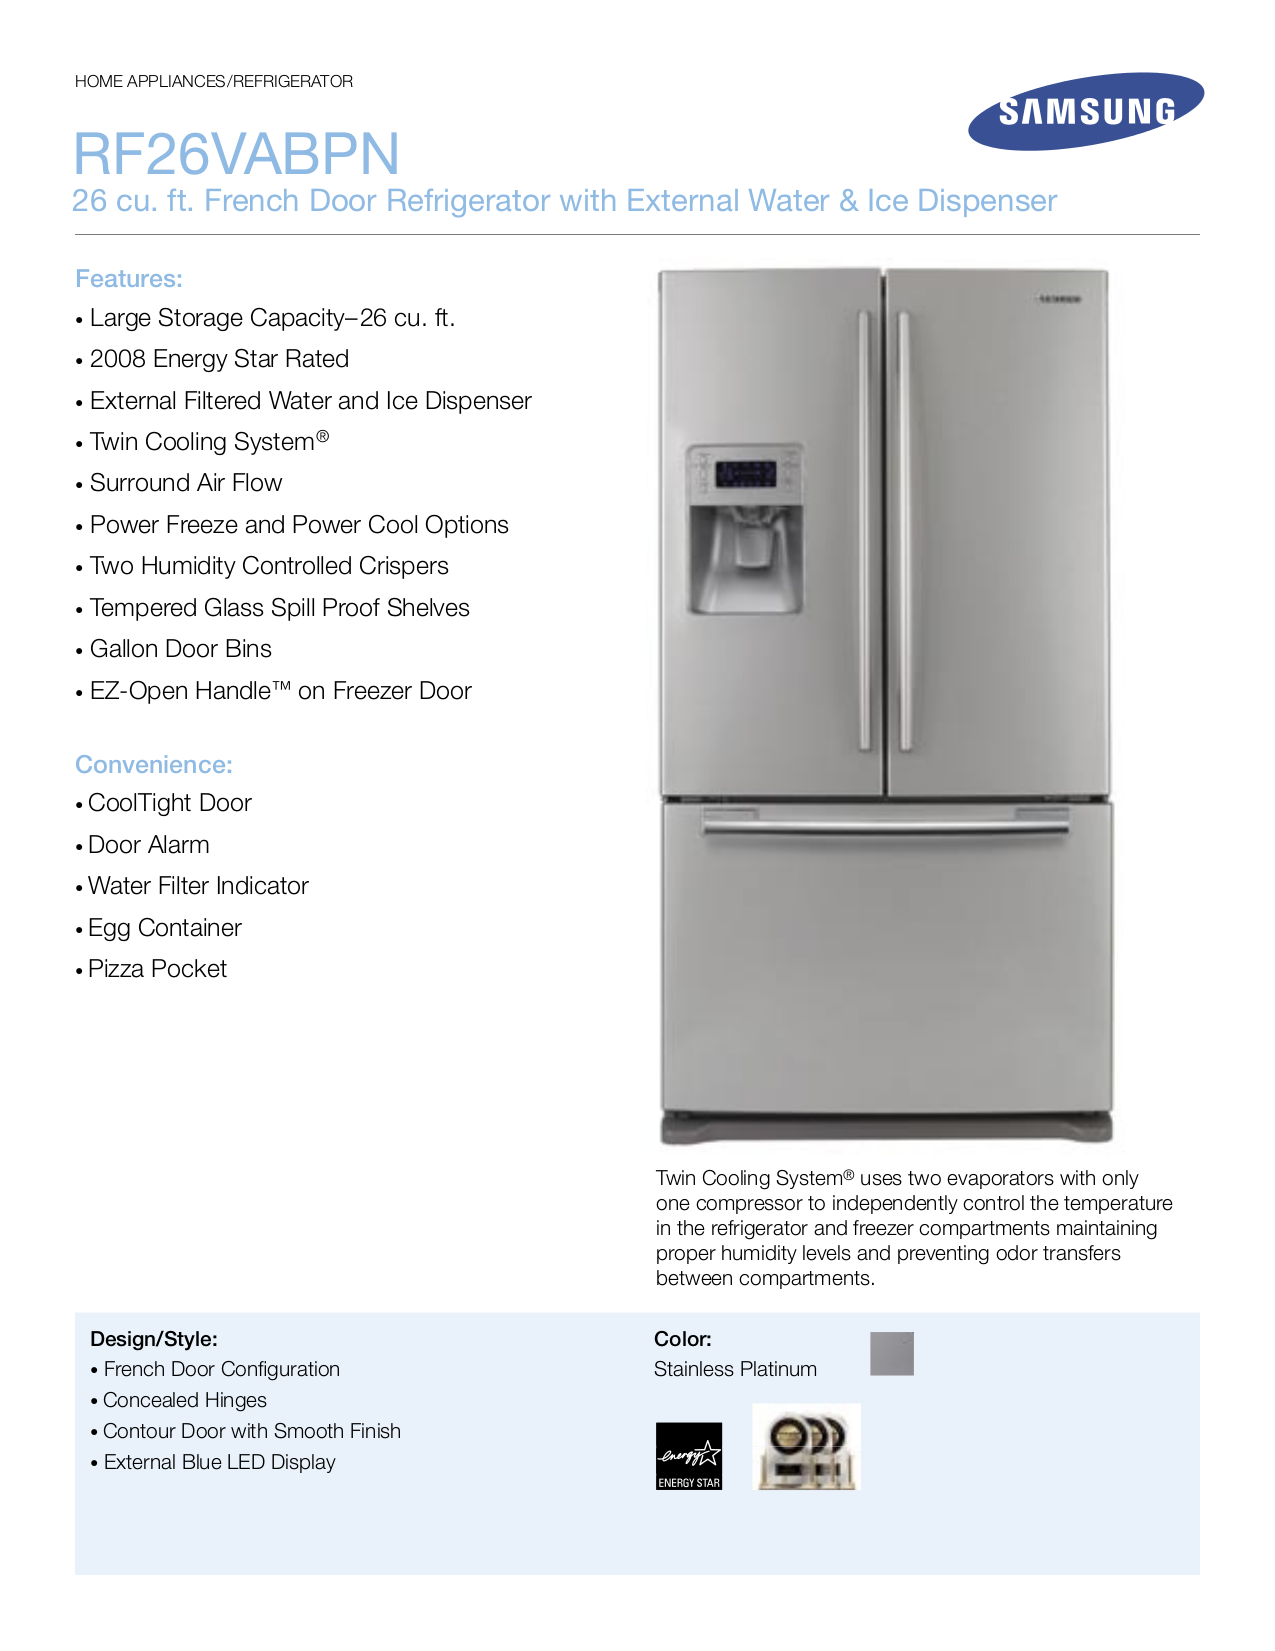 pdf for Samsung Refrigerator RF26VABPN manual